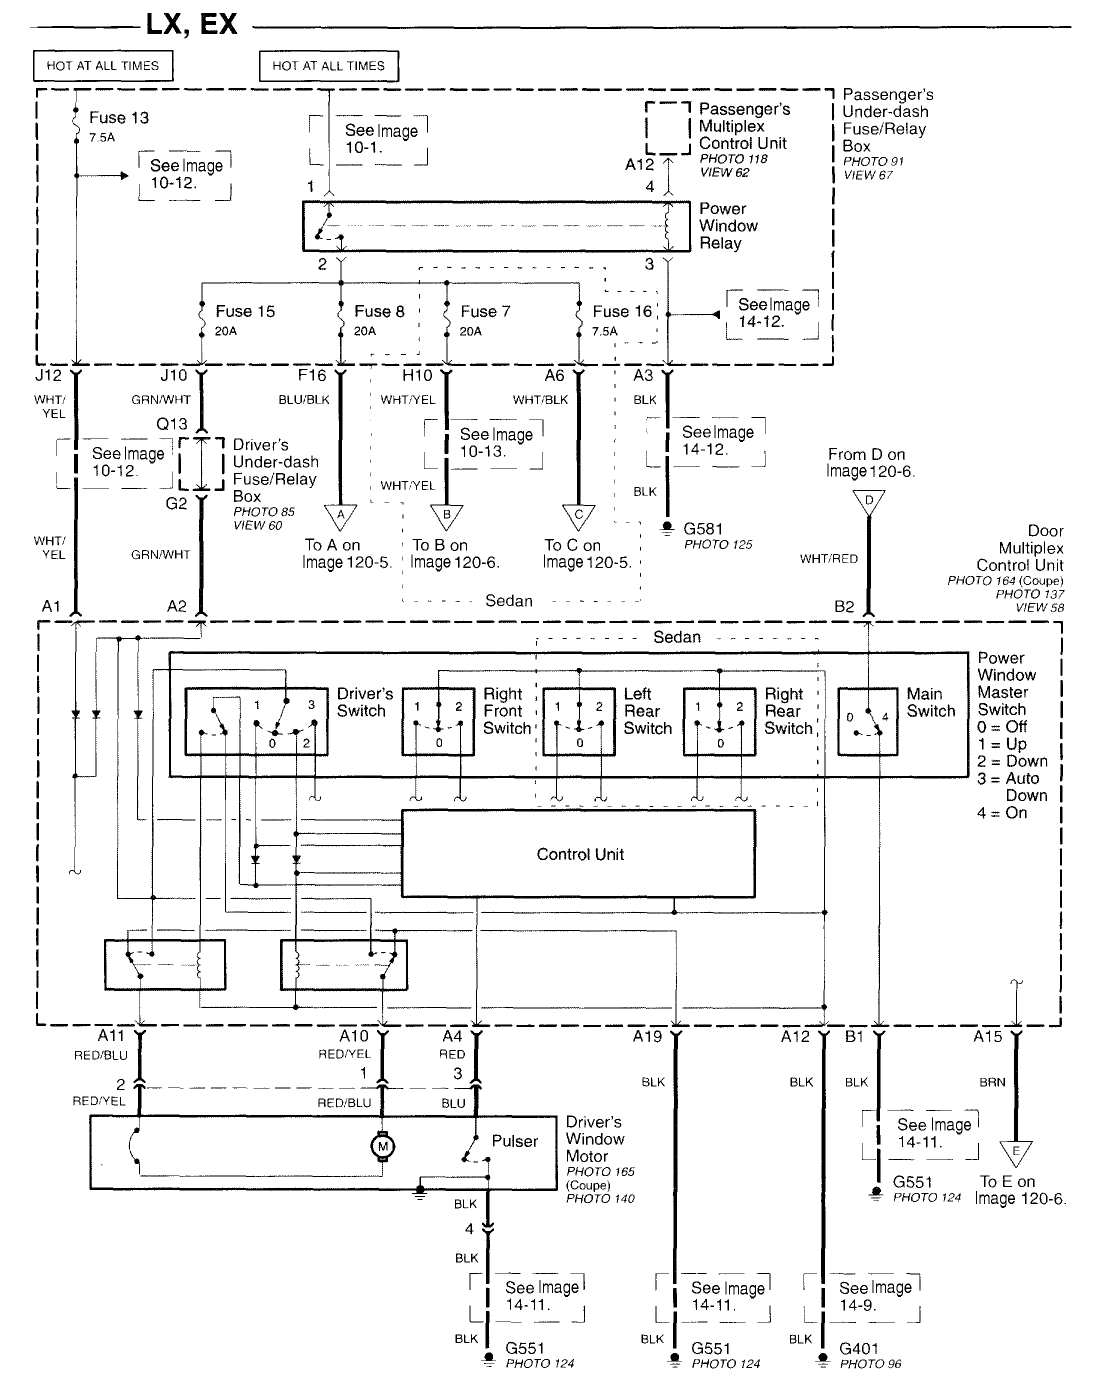 2006 Honda Accord Wiring Diagram In 0996B43F8024Ca4A.gif - Wiring in 99 Honda Civic Wiring Diagram